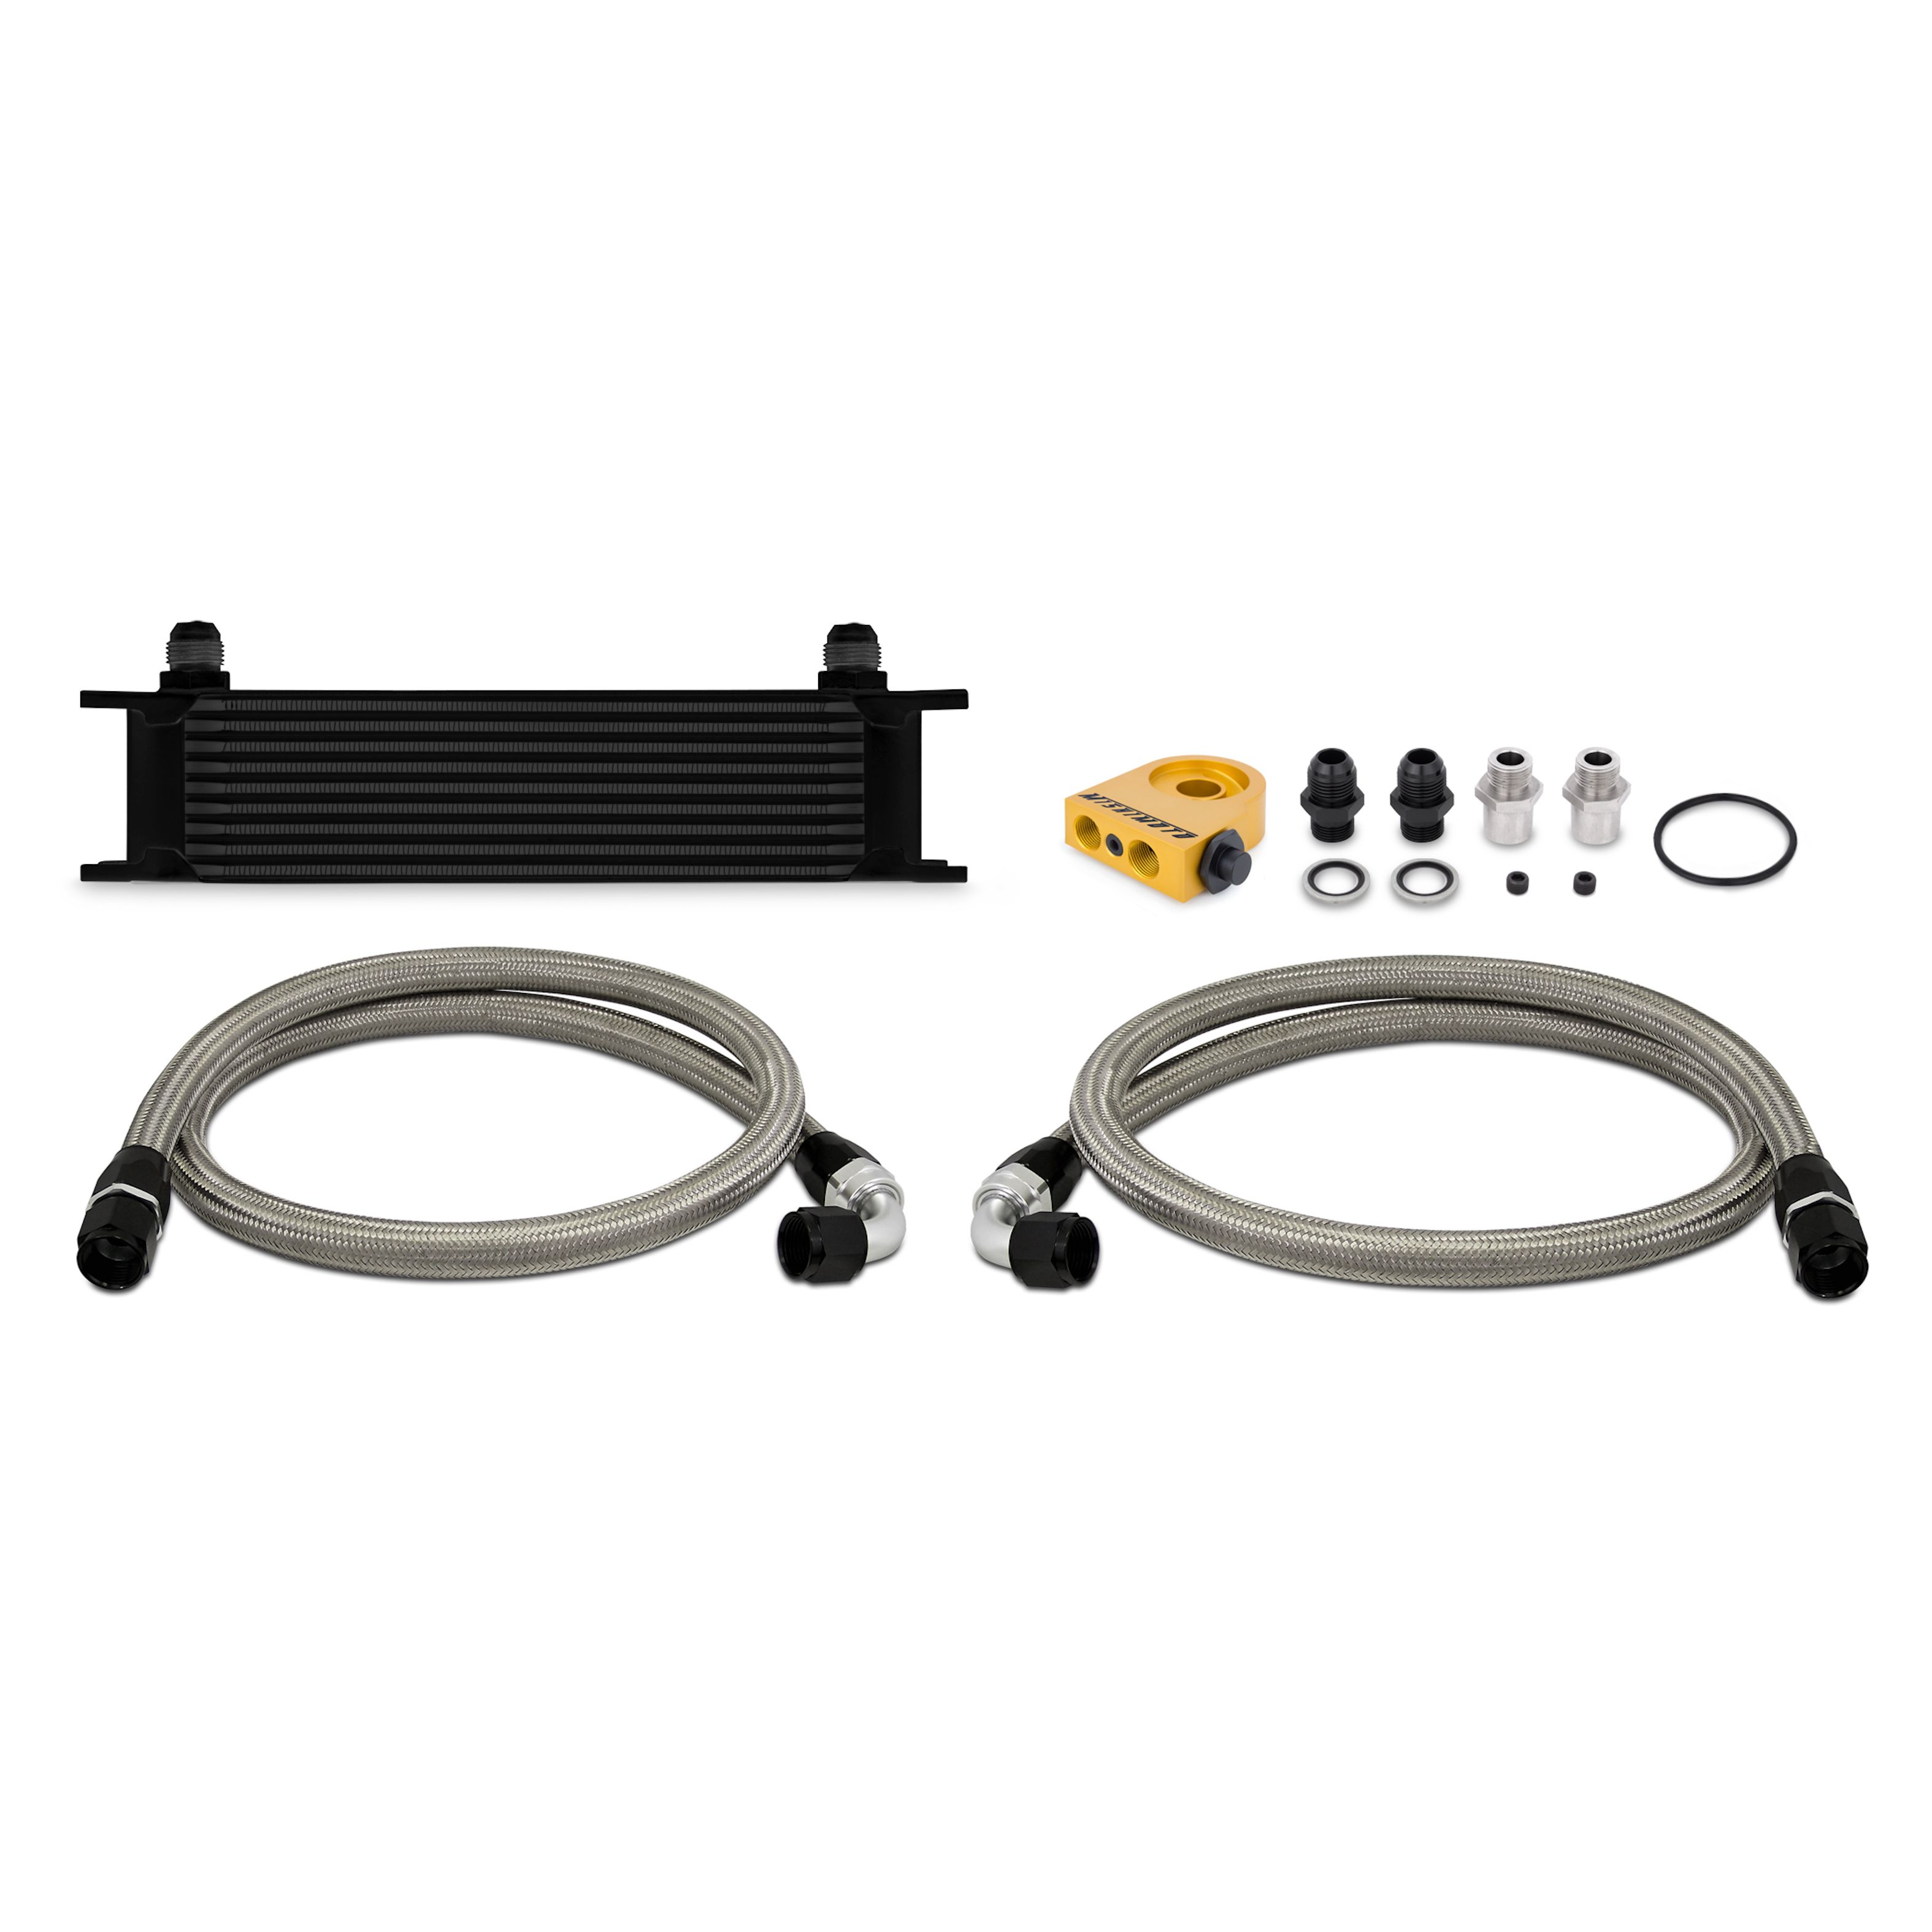 Mishimoto Black Thermostatic Universal Fit 10 Row Oil Cooler